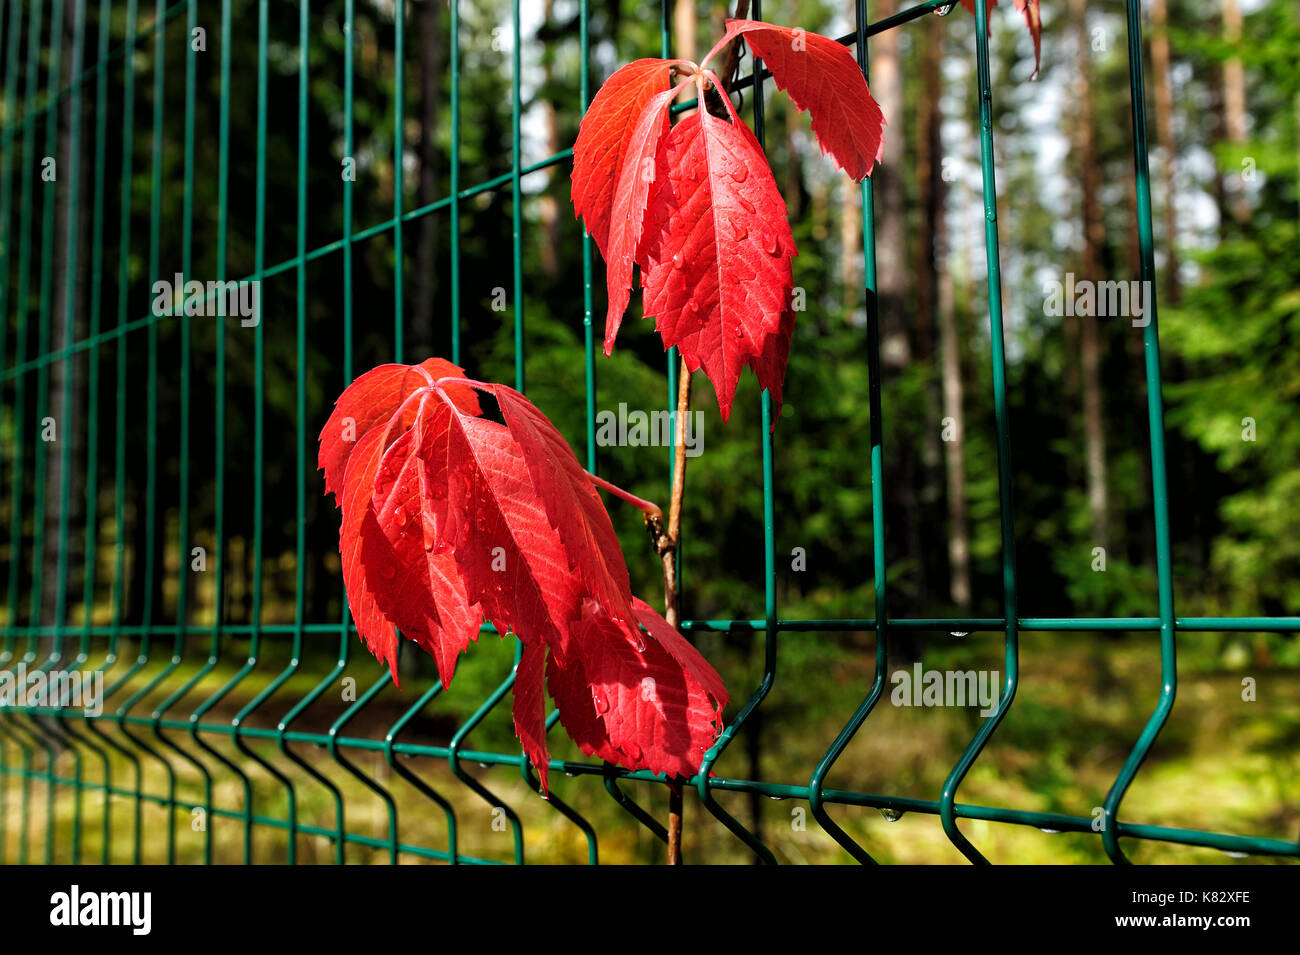 Red Virginia Creeper Leaves Stockfotos & Red Virginia Creeper Leaves ...